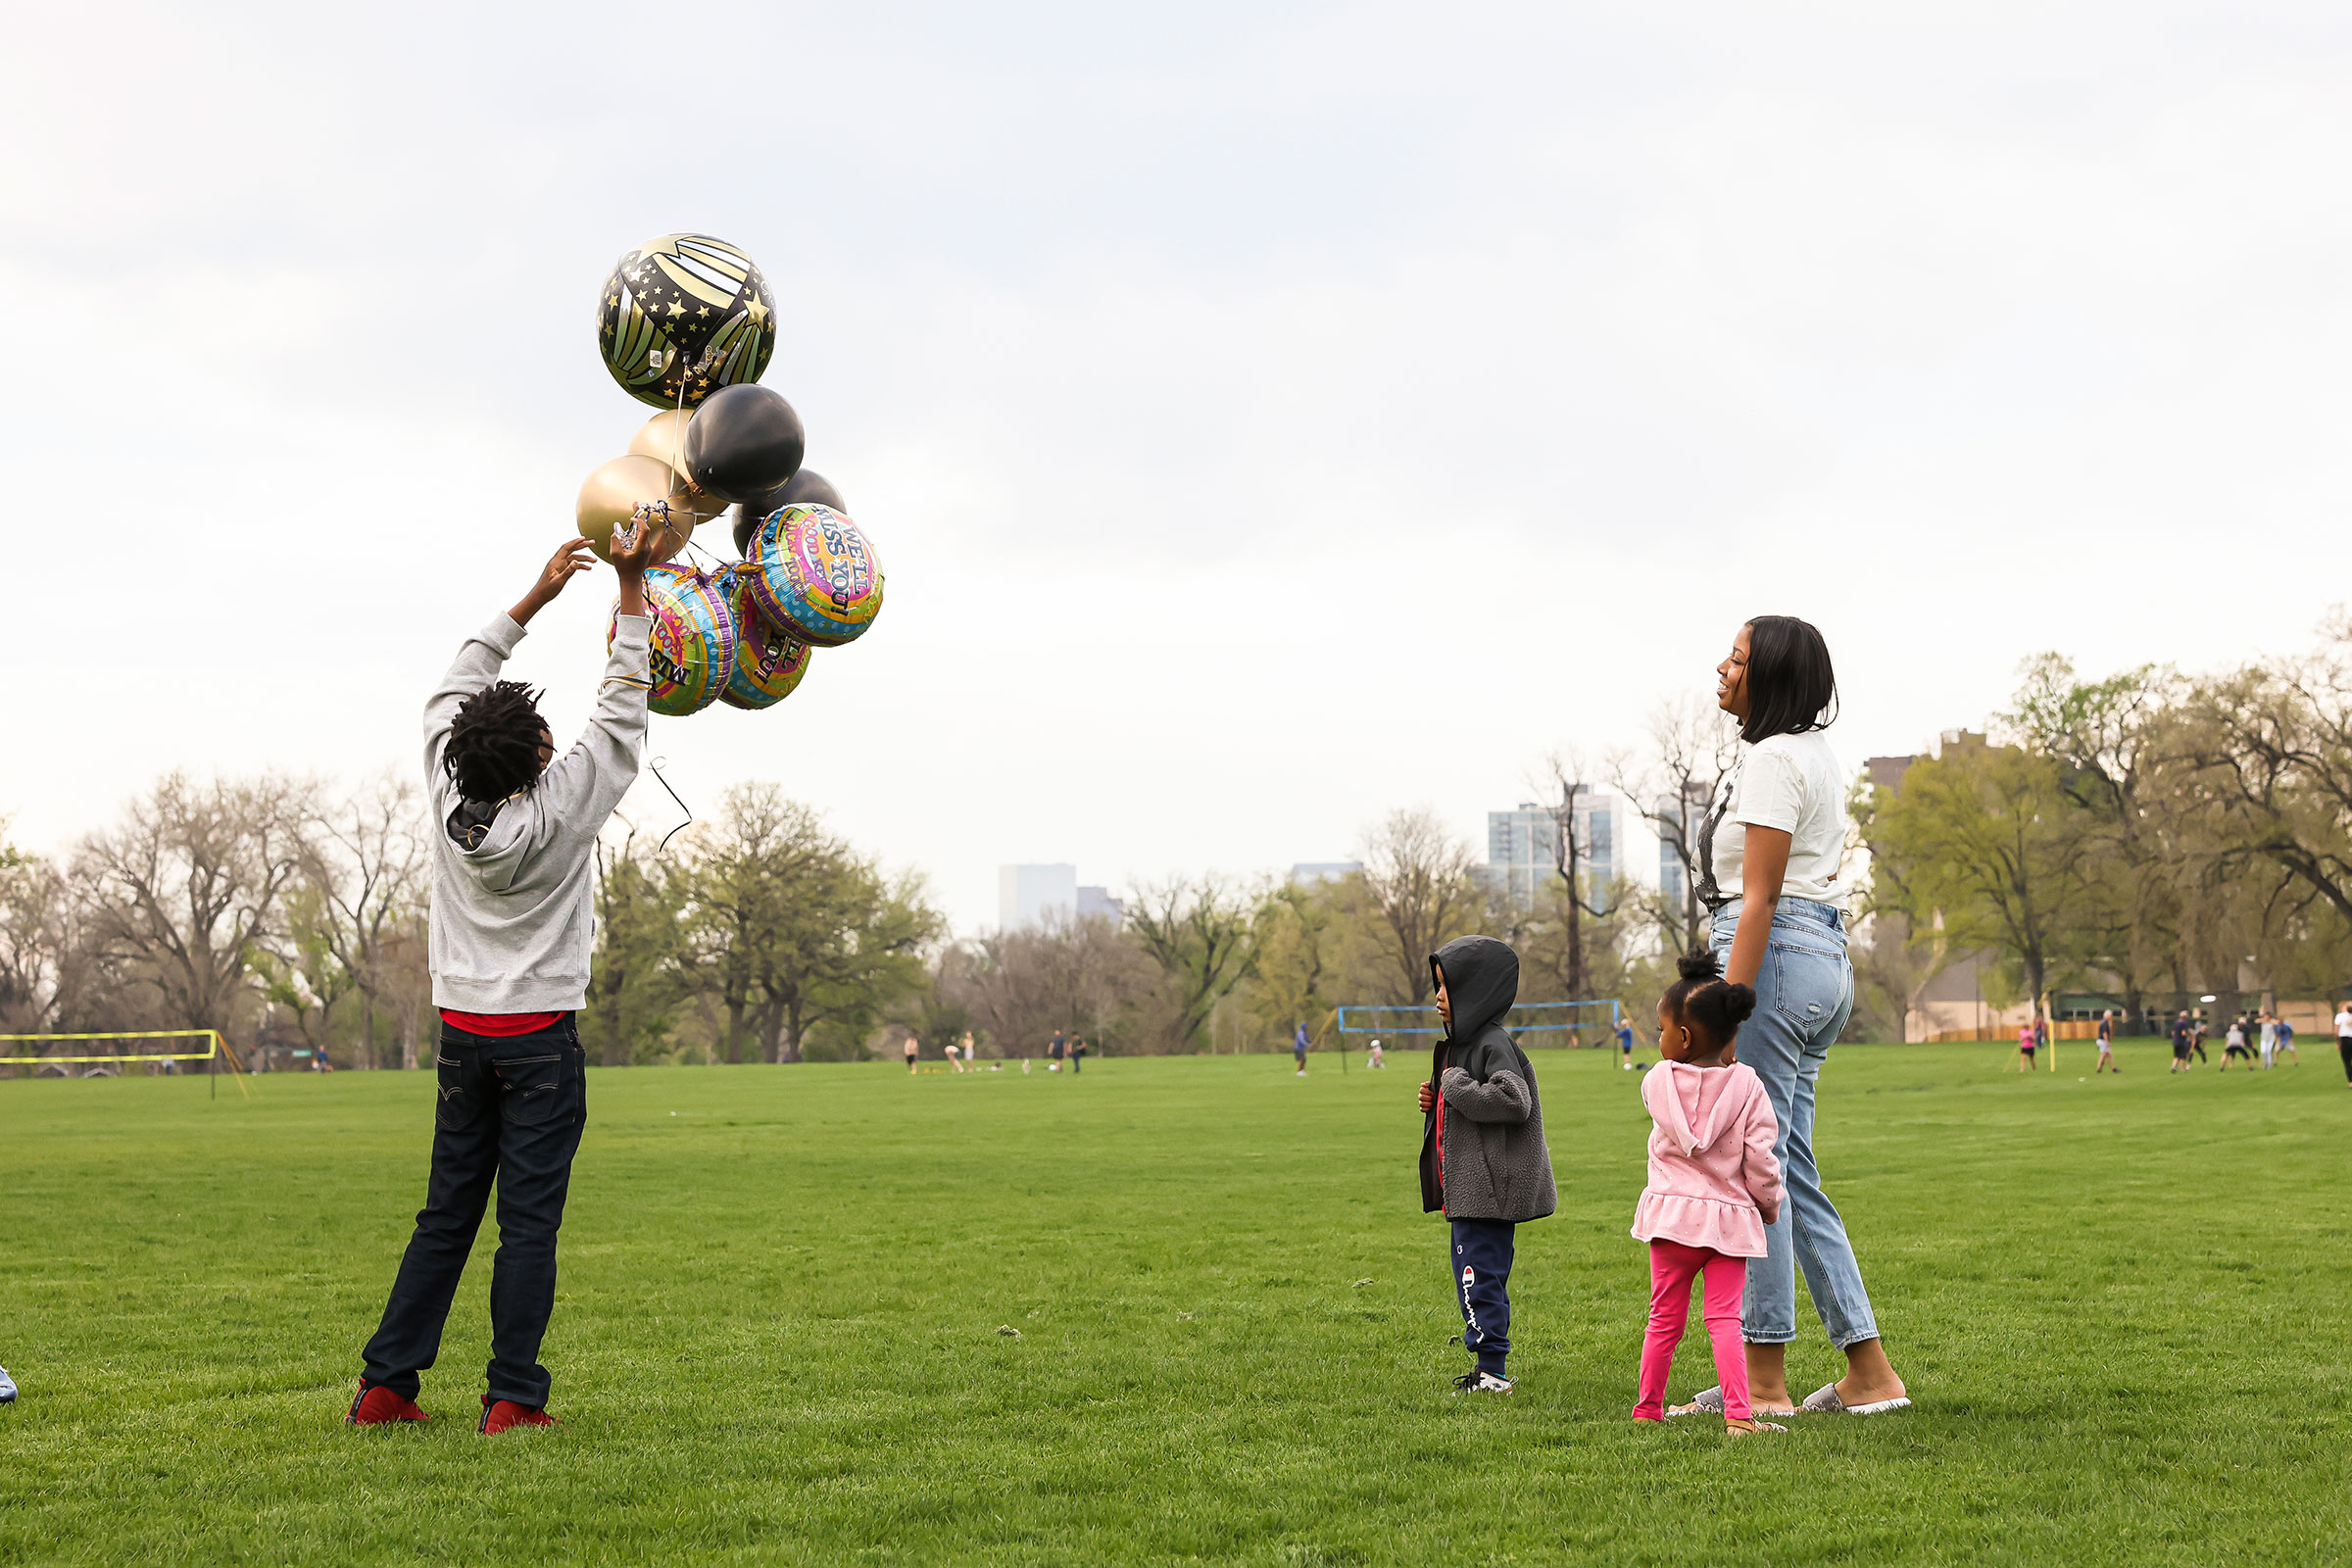 Nehemiah prepares to release balloons in commemoration of his father while his mother Ashley, his 4-year-old bother, Prince, and 3-year-old sister, Zyla, watch nearby